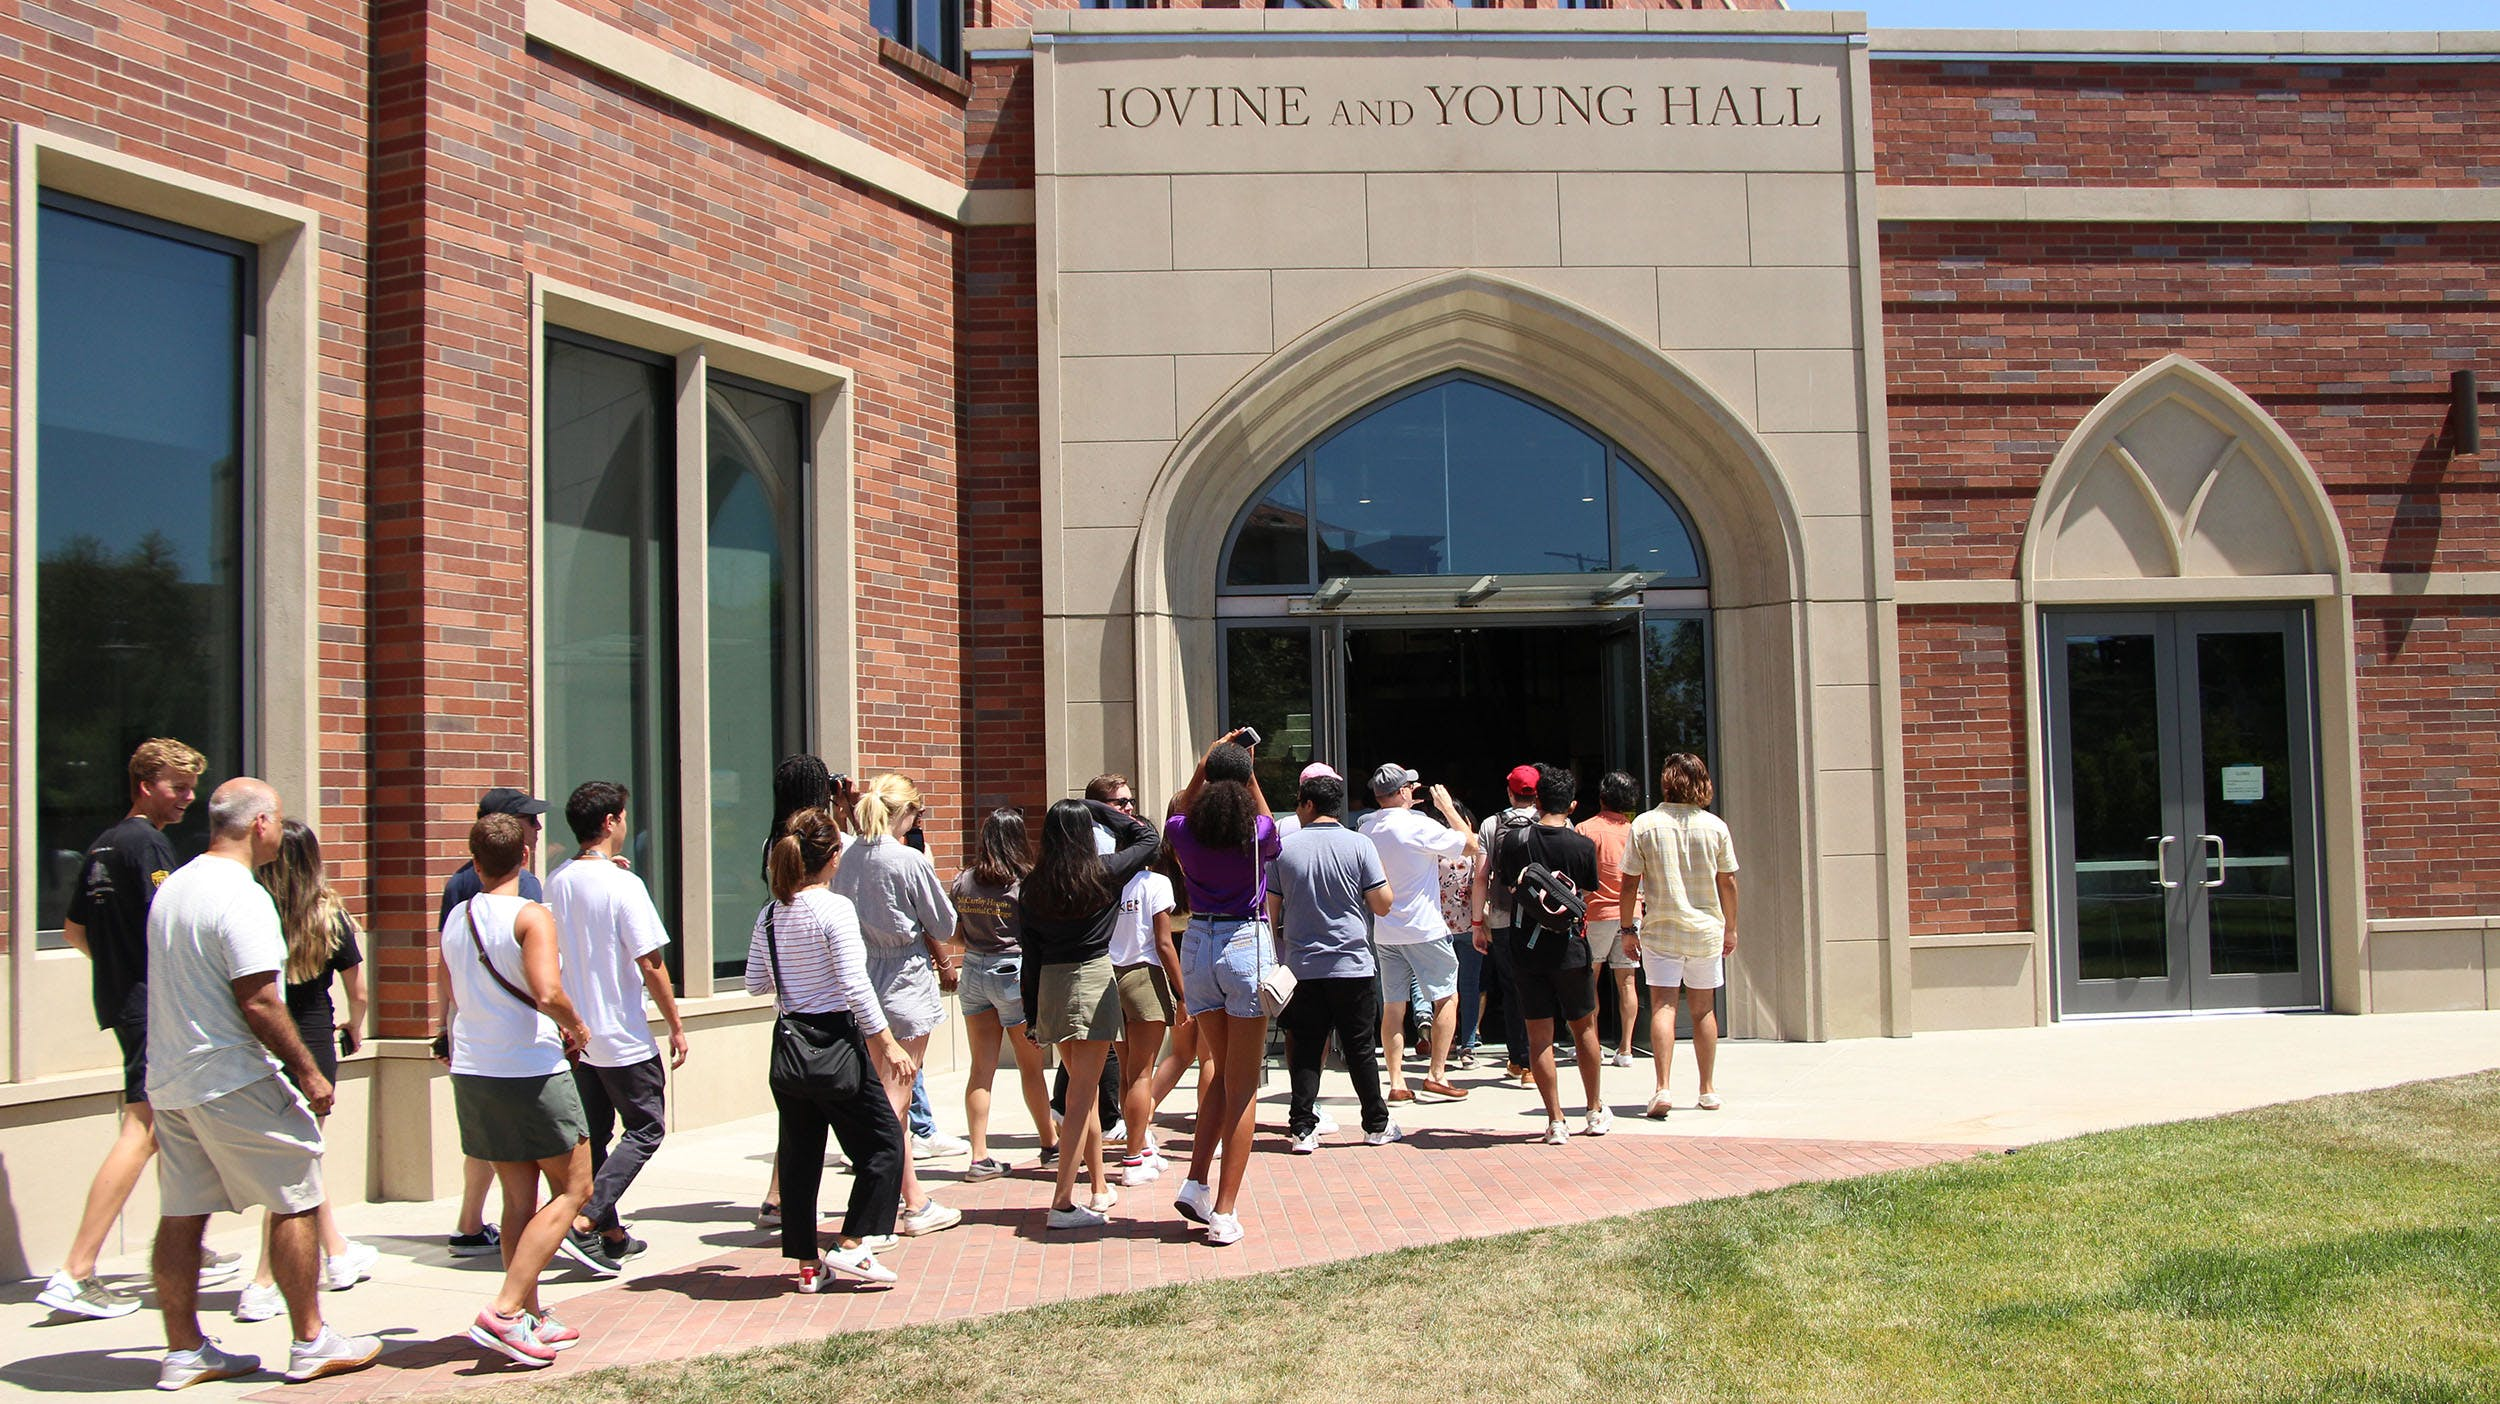 A tour walking into Iovine and Young Hall